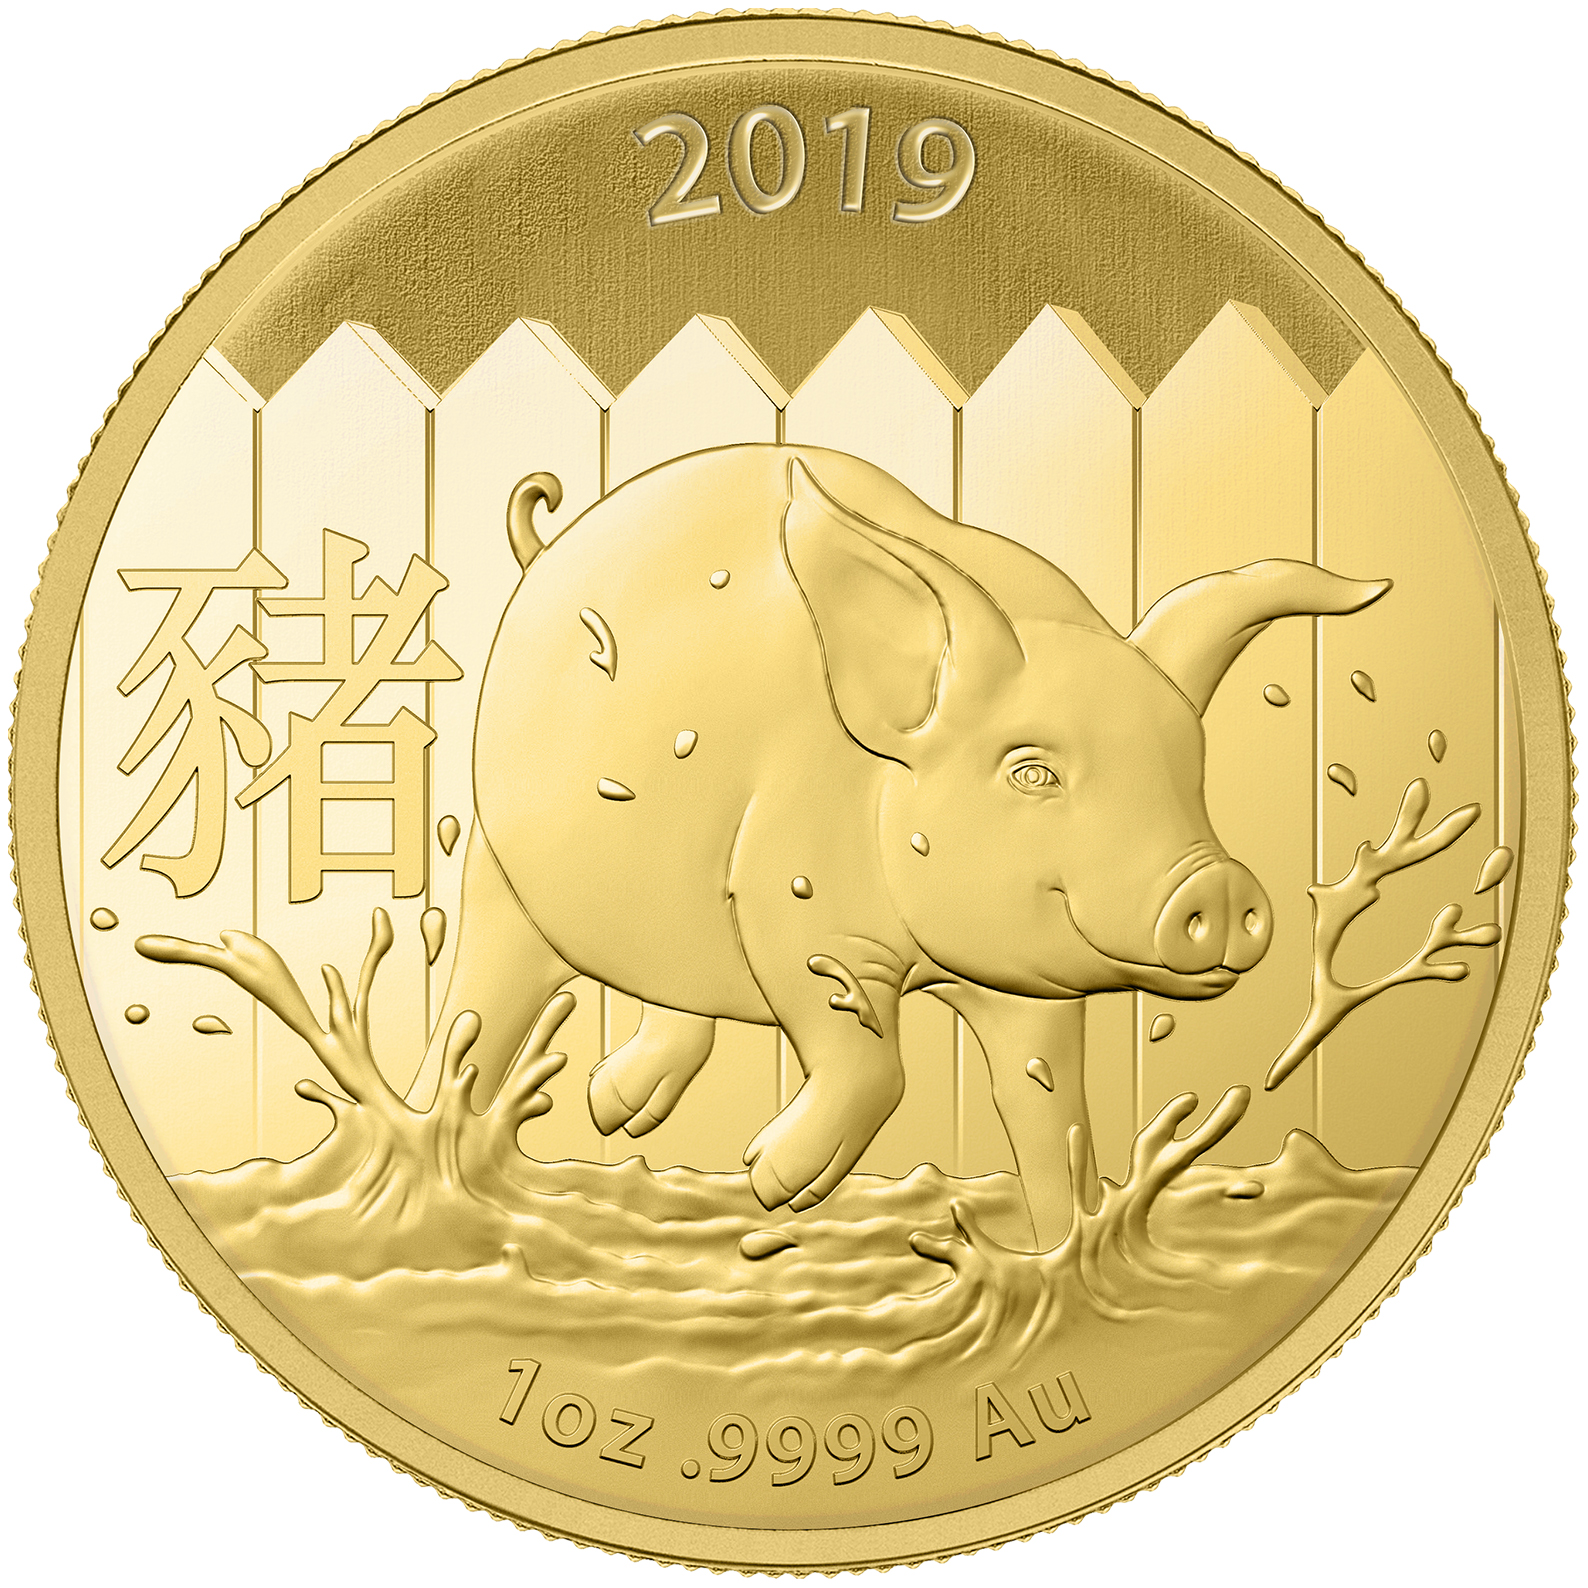 1 oz Gold Coin - Lunar Pig BU 2019